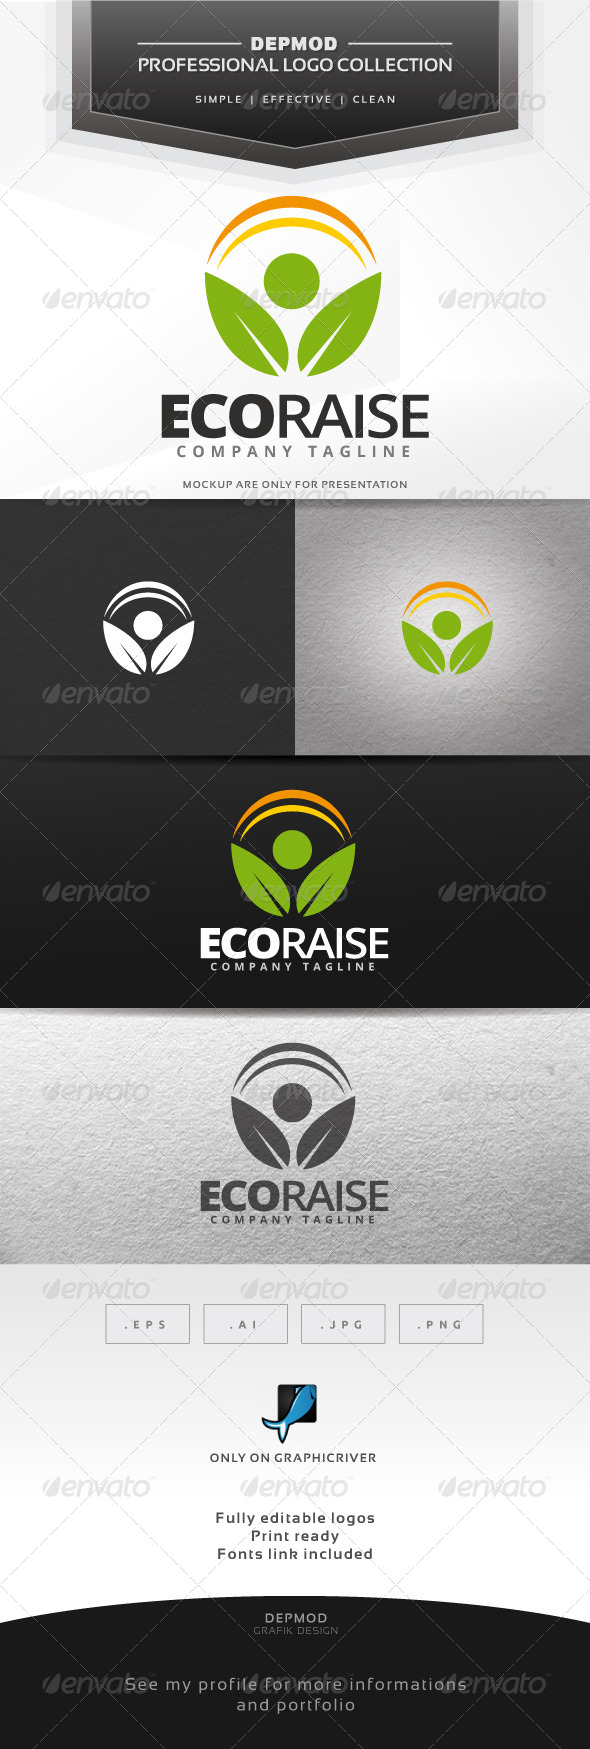 GraphicRiver Eco Raise Logo 7459976